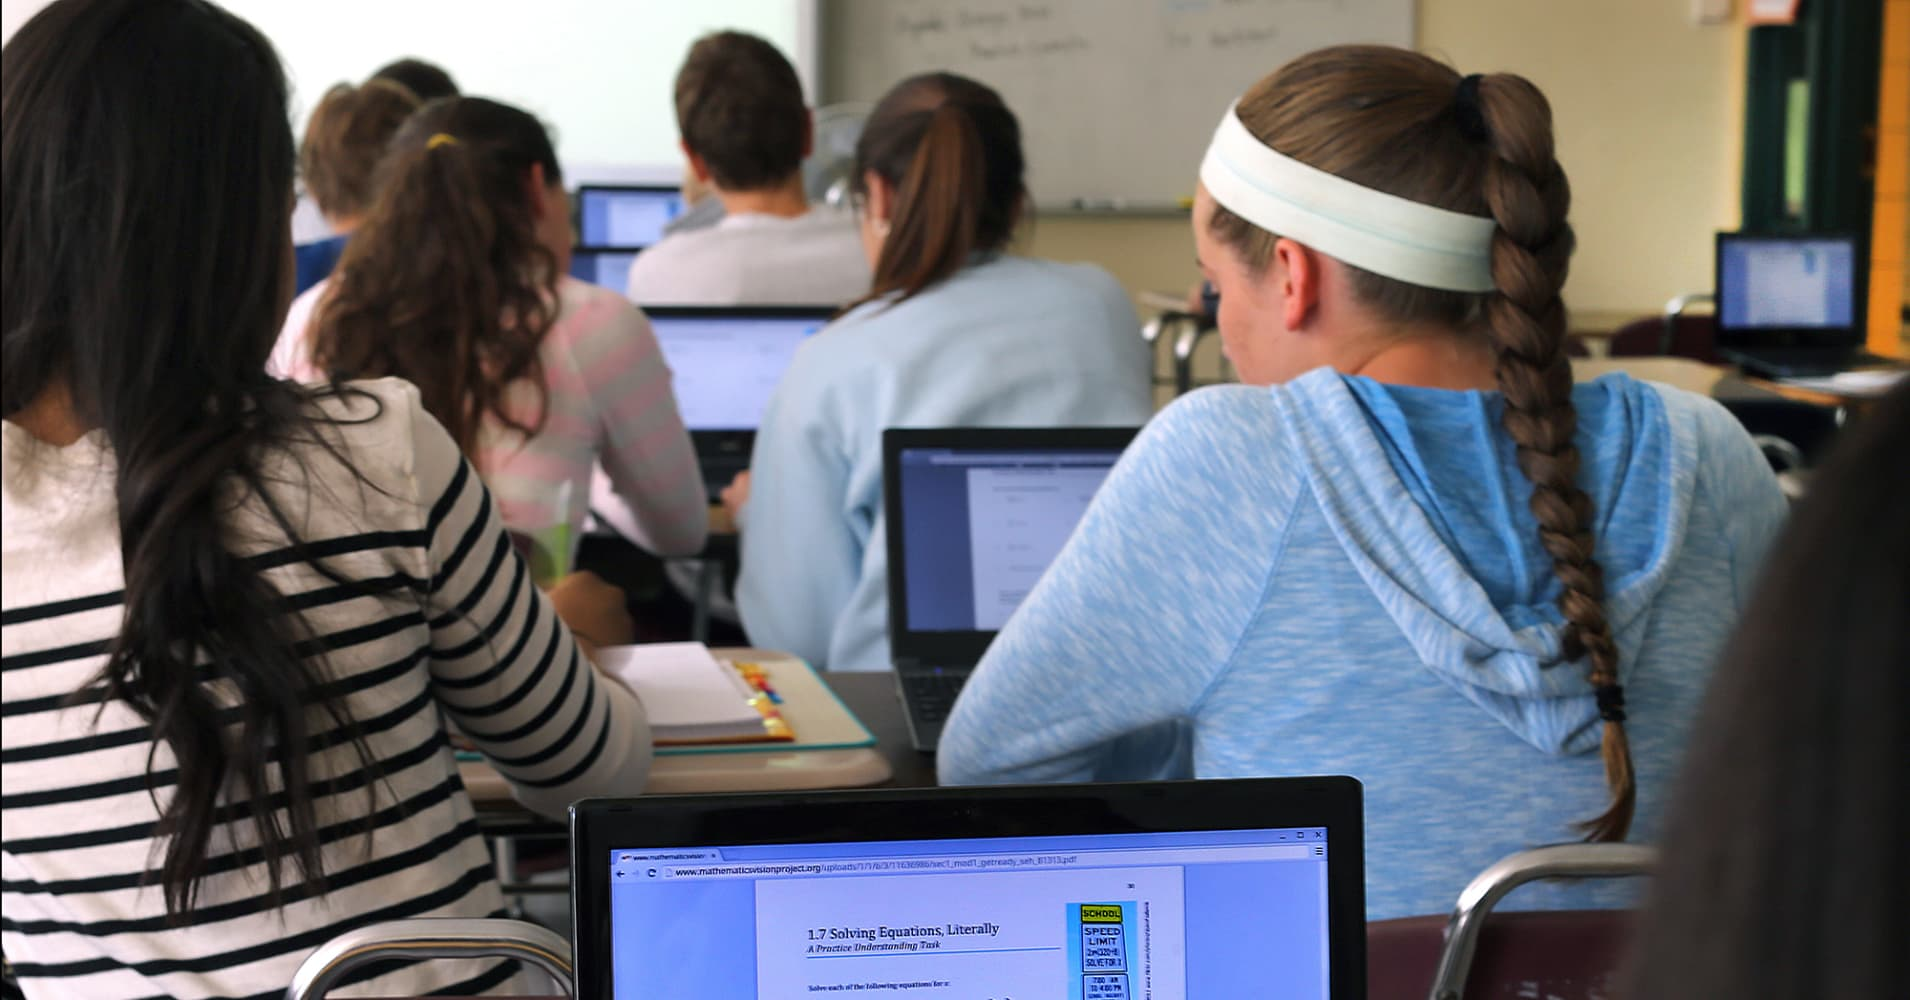 Google S Chromebooks Make Up Half Of Us Classroom Devices